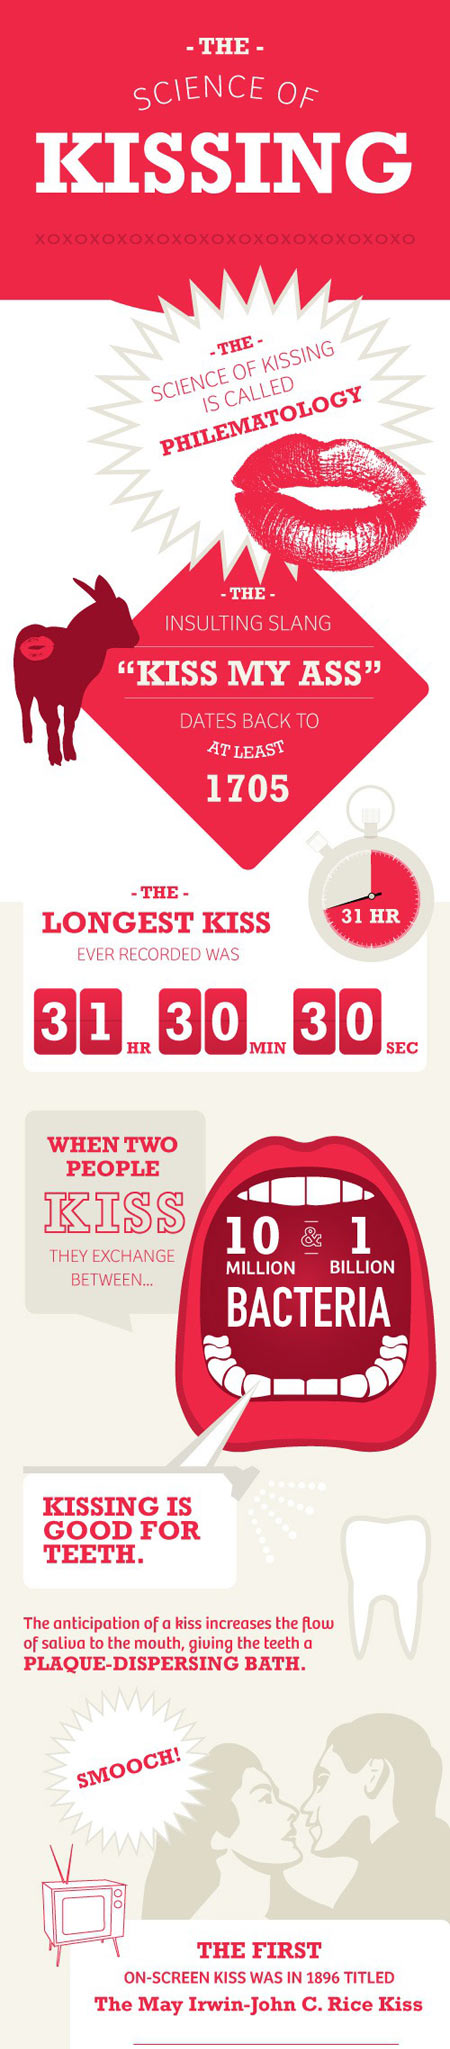 Science of Kissing...